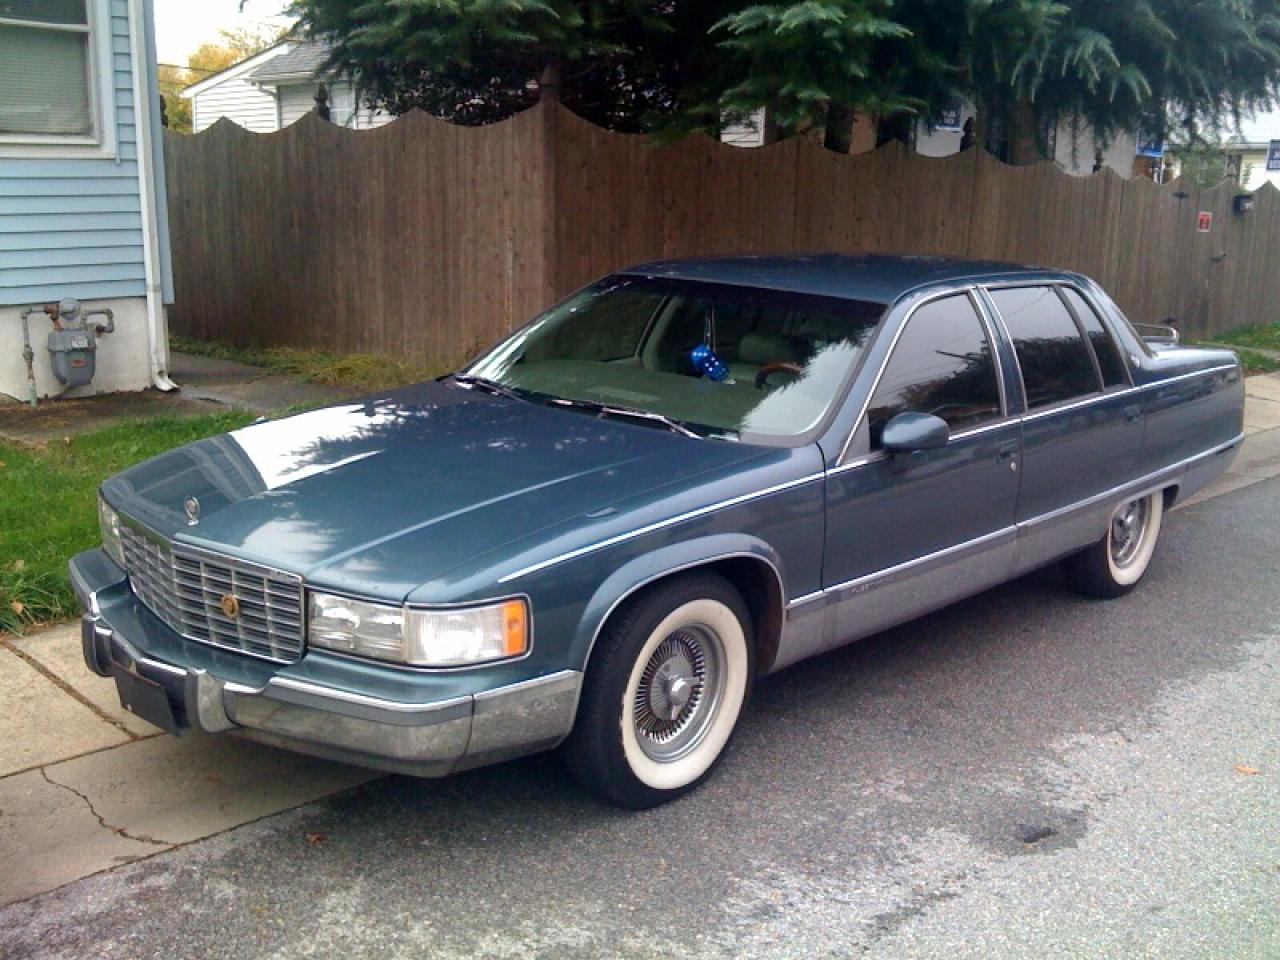 1994 cadillac deville information and photos zombiedrive. Black Bedroom Furniture Sets. Home Design Ideas